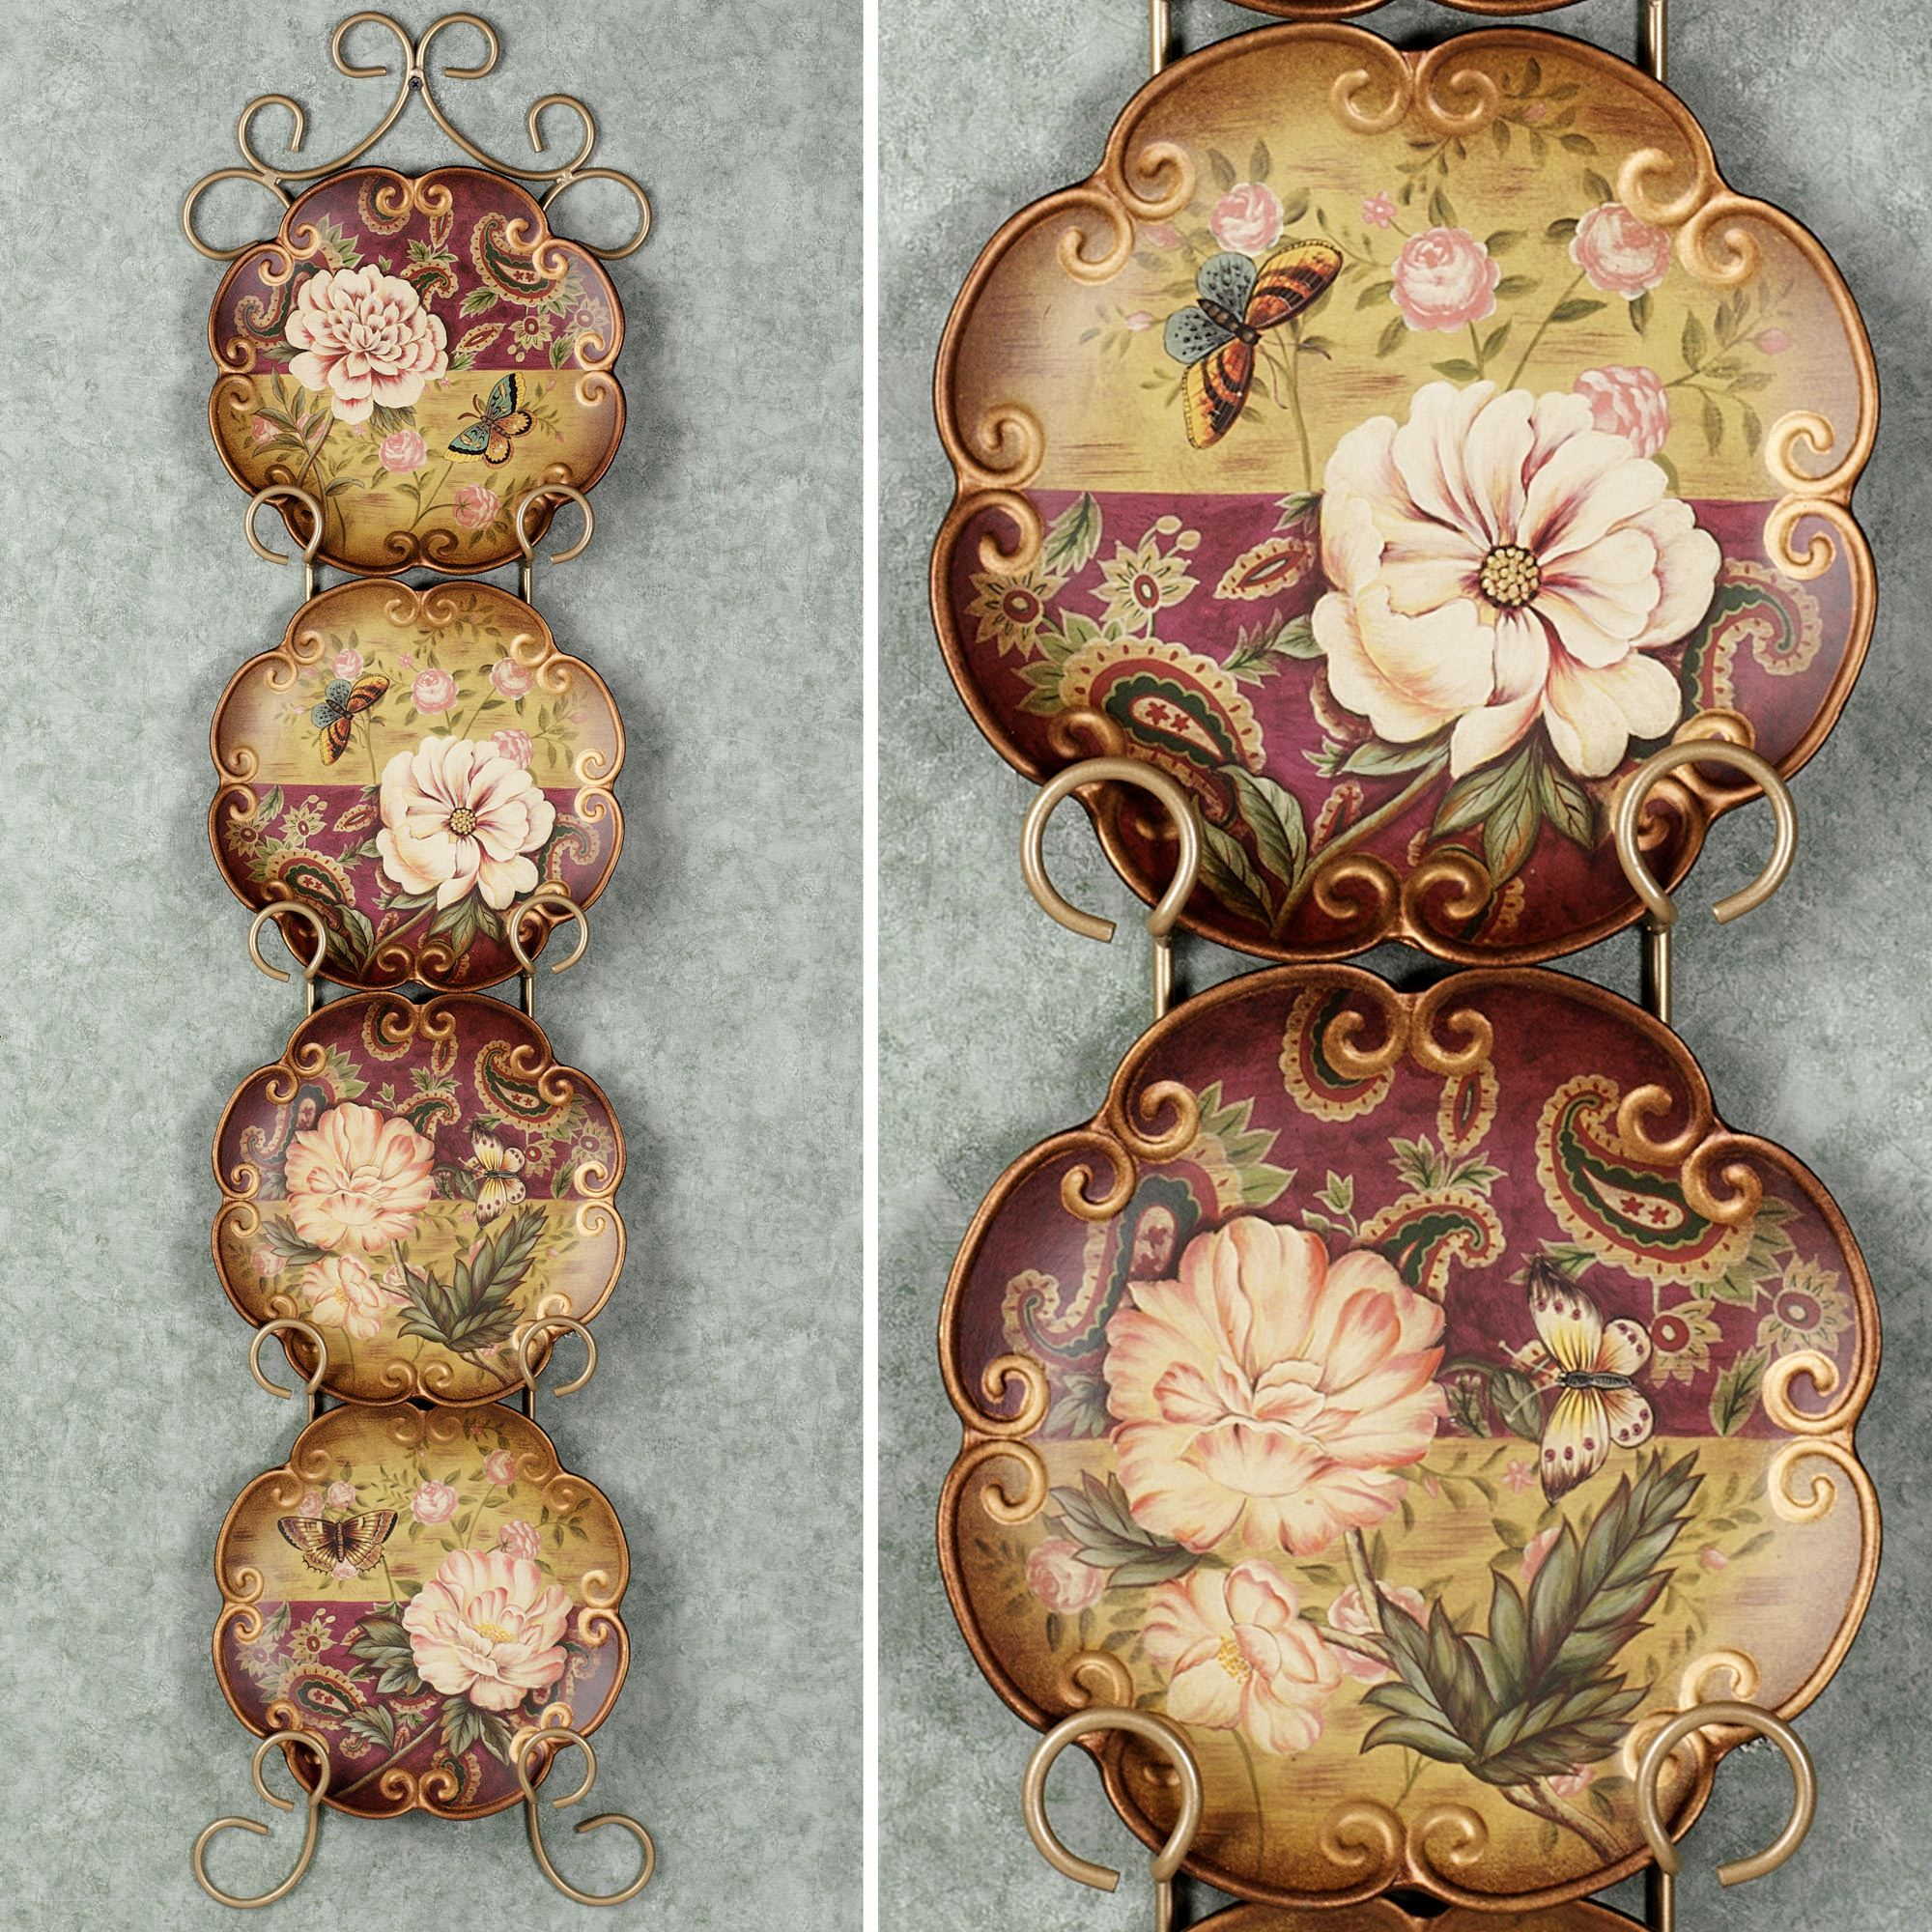 Natures Beauty Decorative Ceramic Plate Set